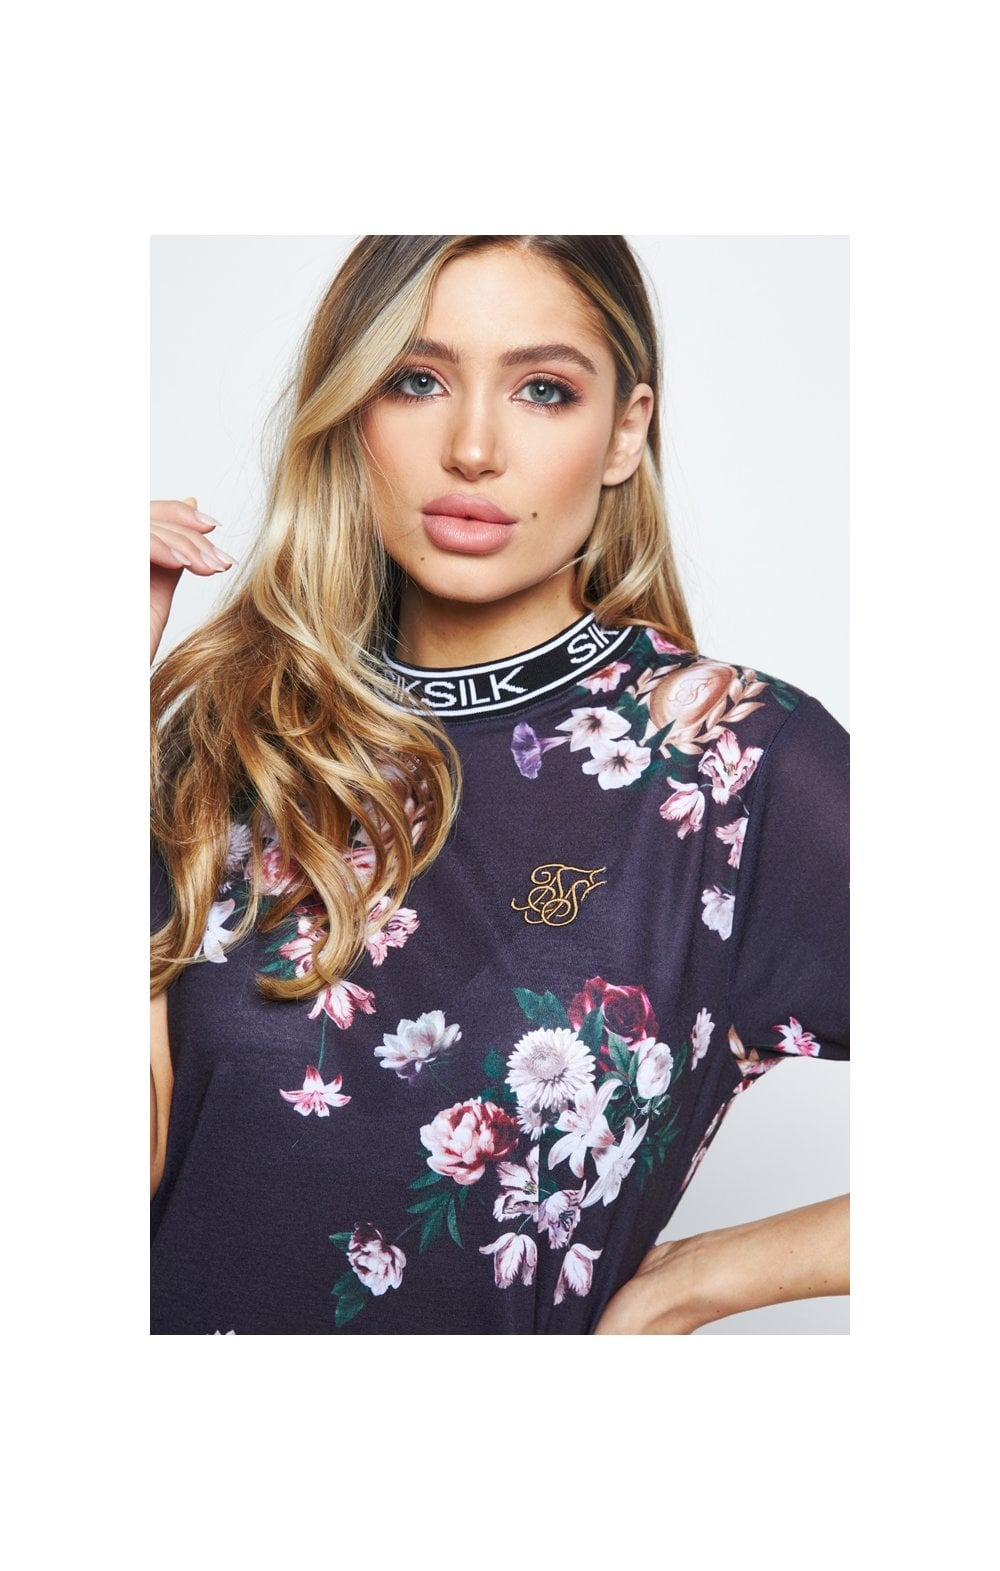 Load image into Gallery viewer, SikSilk Prestige Floral Tee Dress – Black